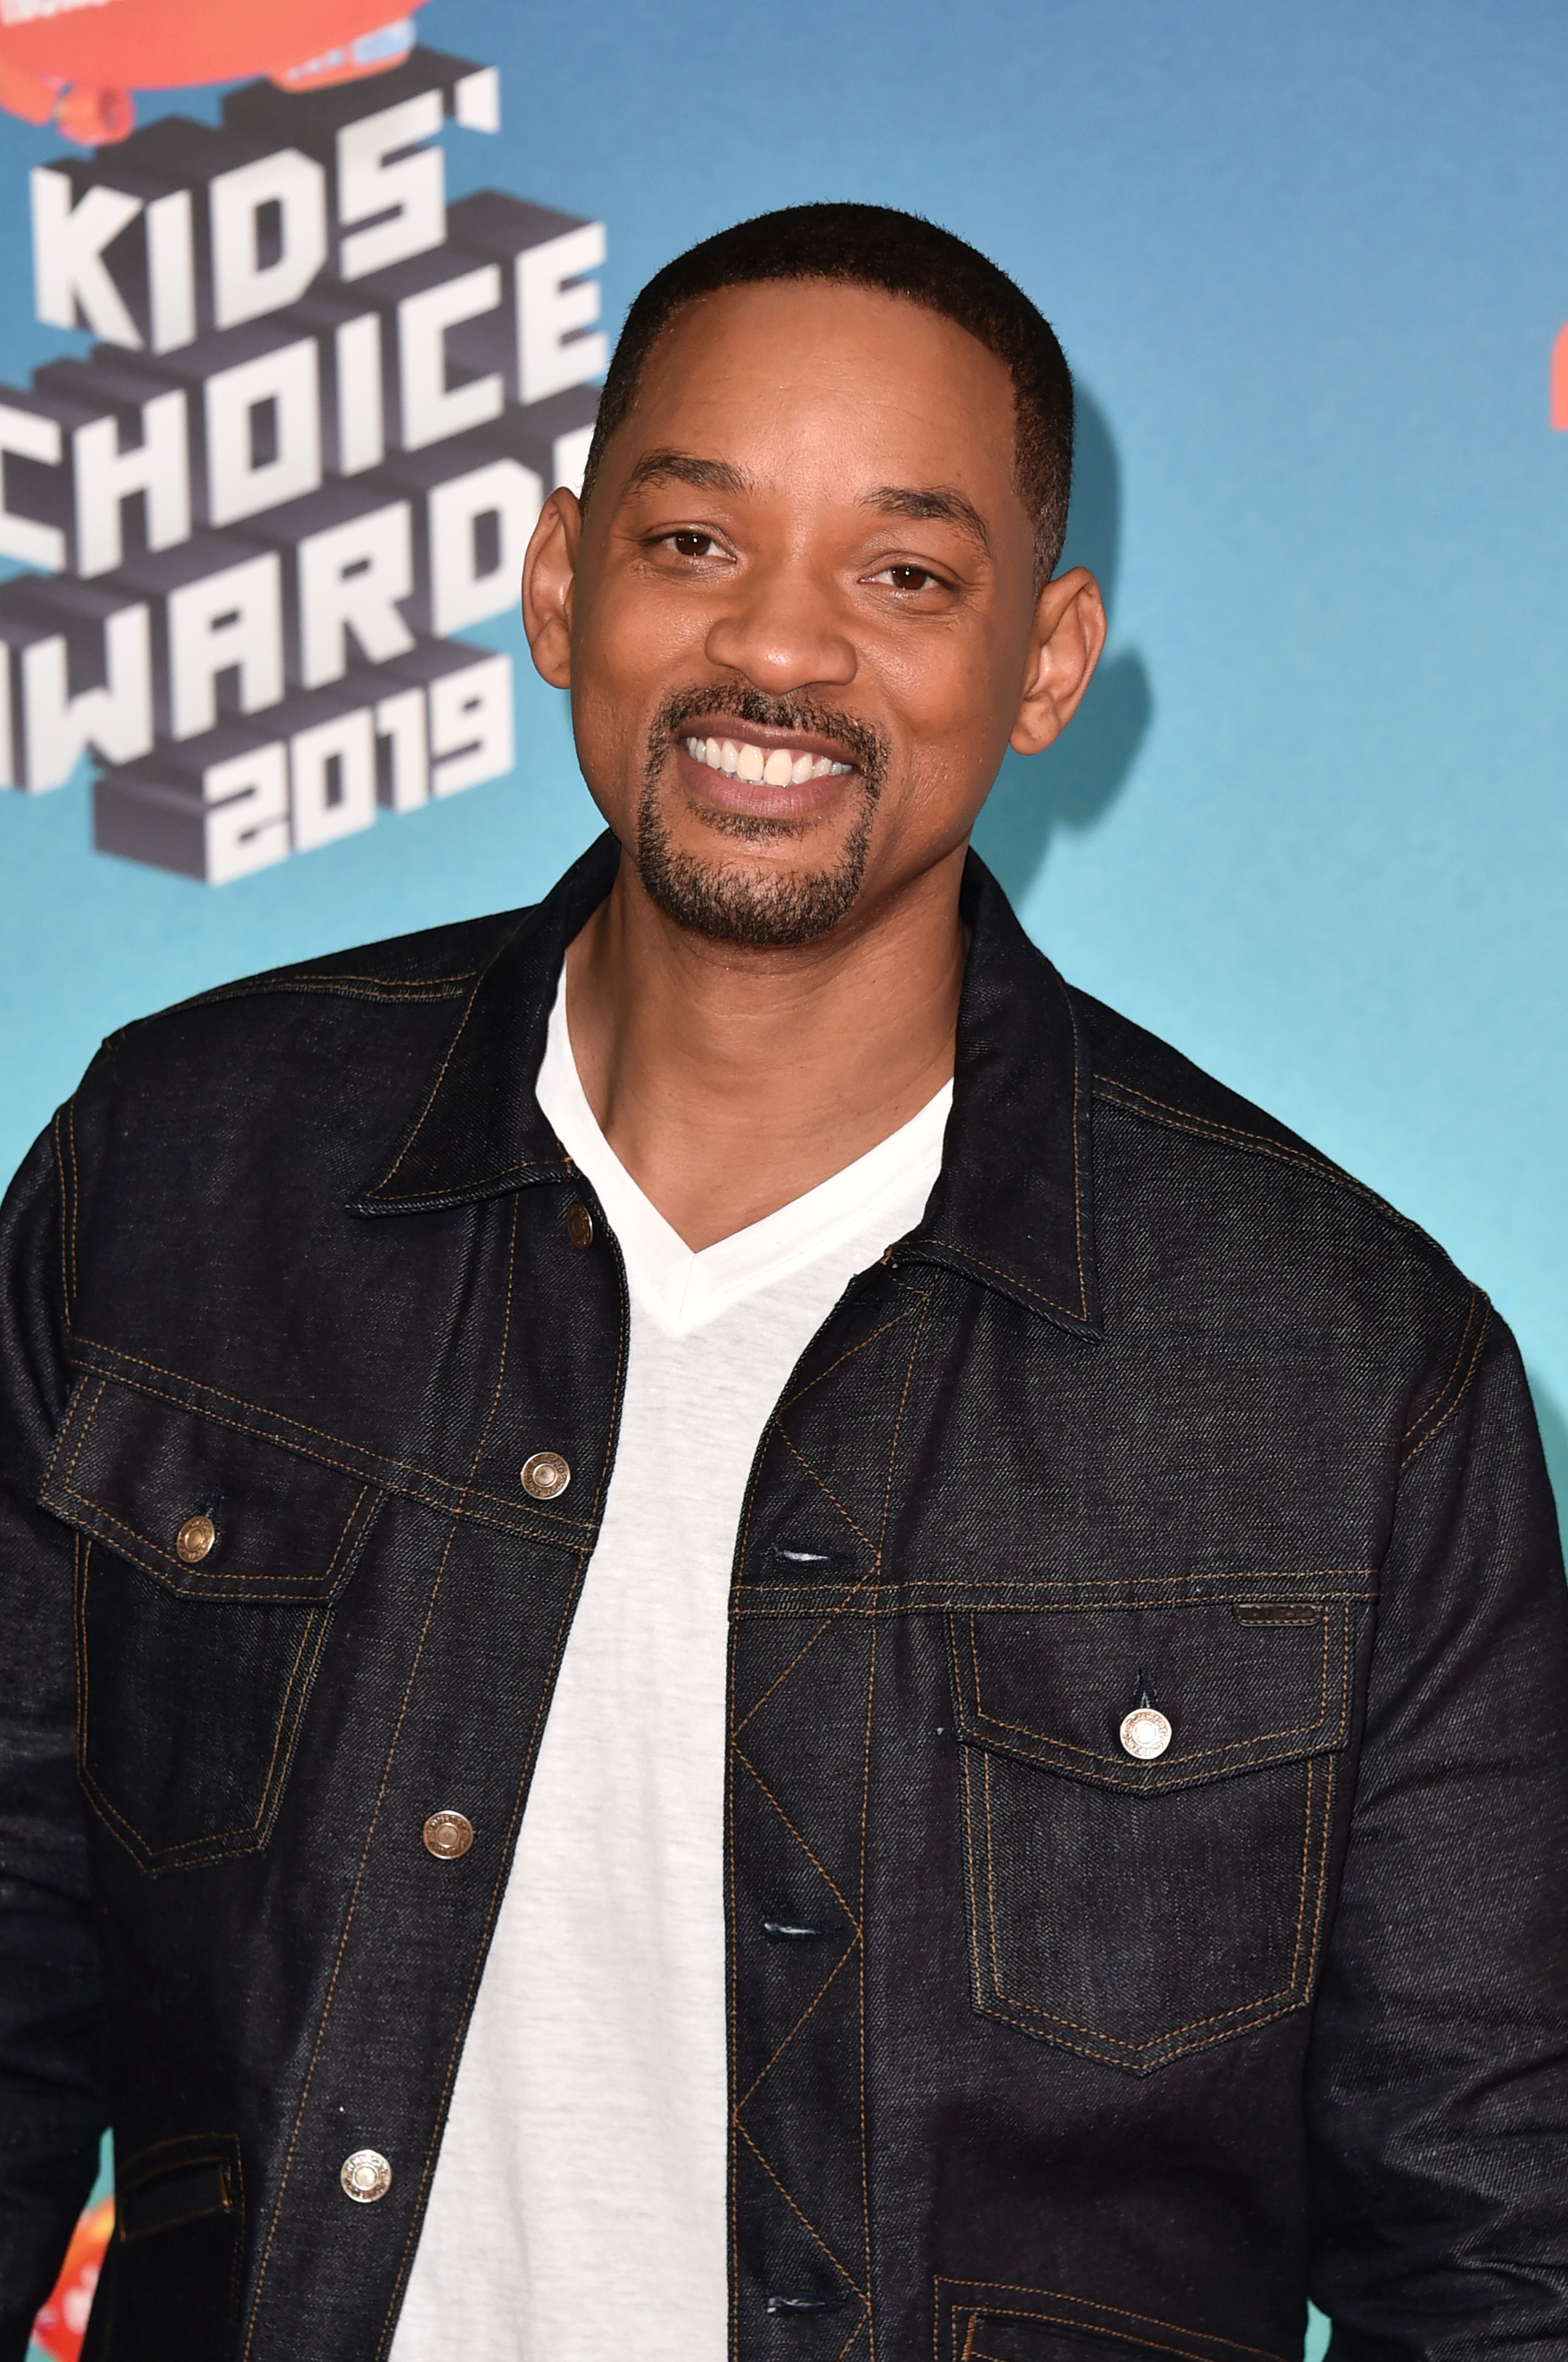 Watch Will Smith Shoot Some B-Ball Outside of the School